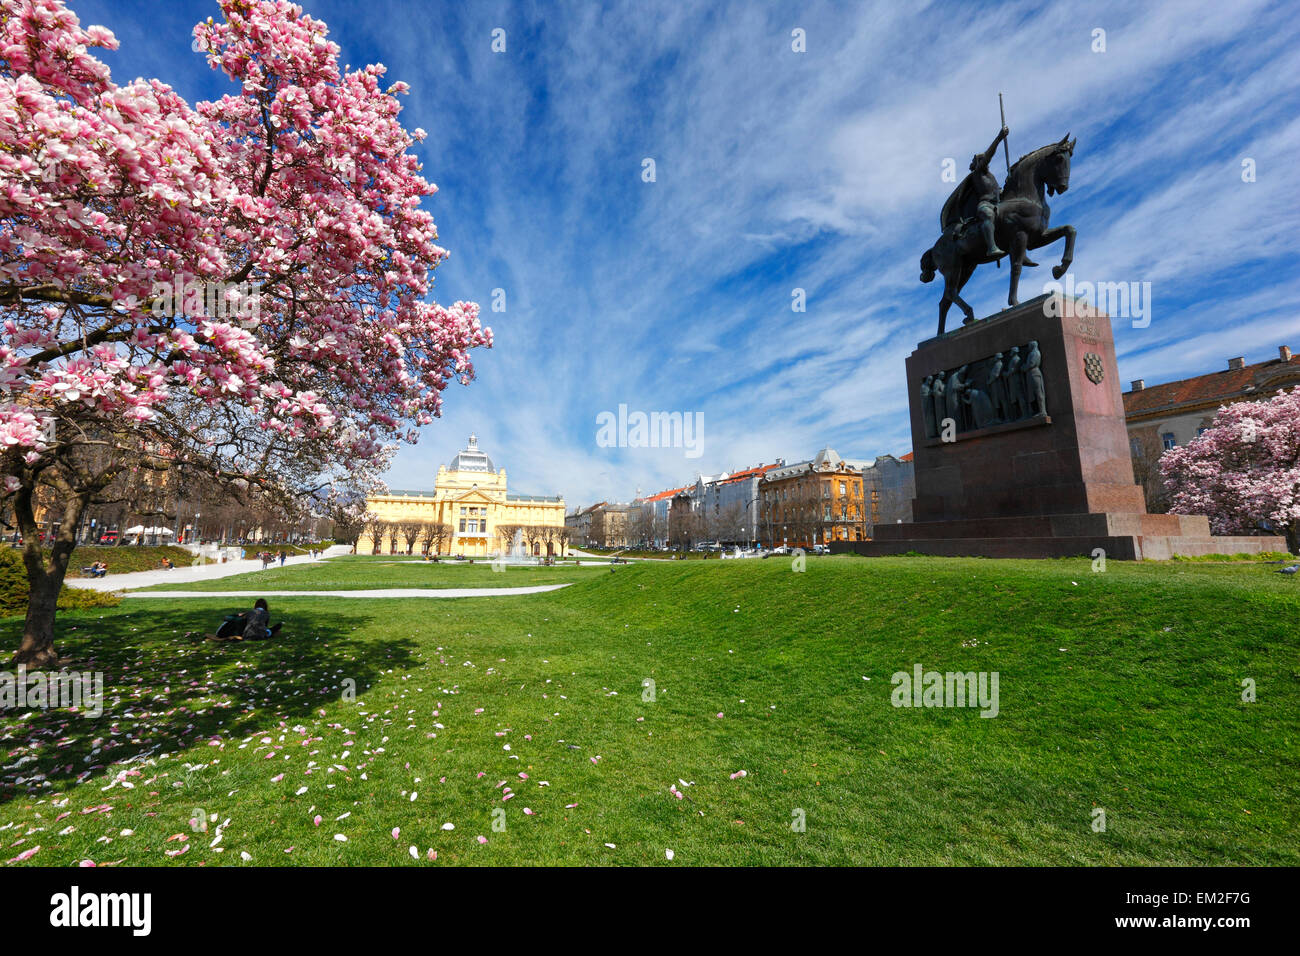 Zagreb,The king Tomislav statue and art pavilion in the spring. - Stock Image